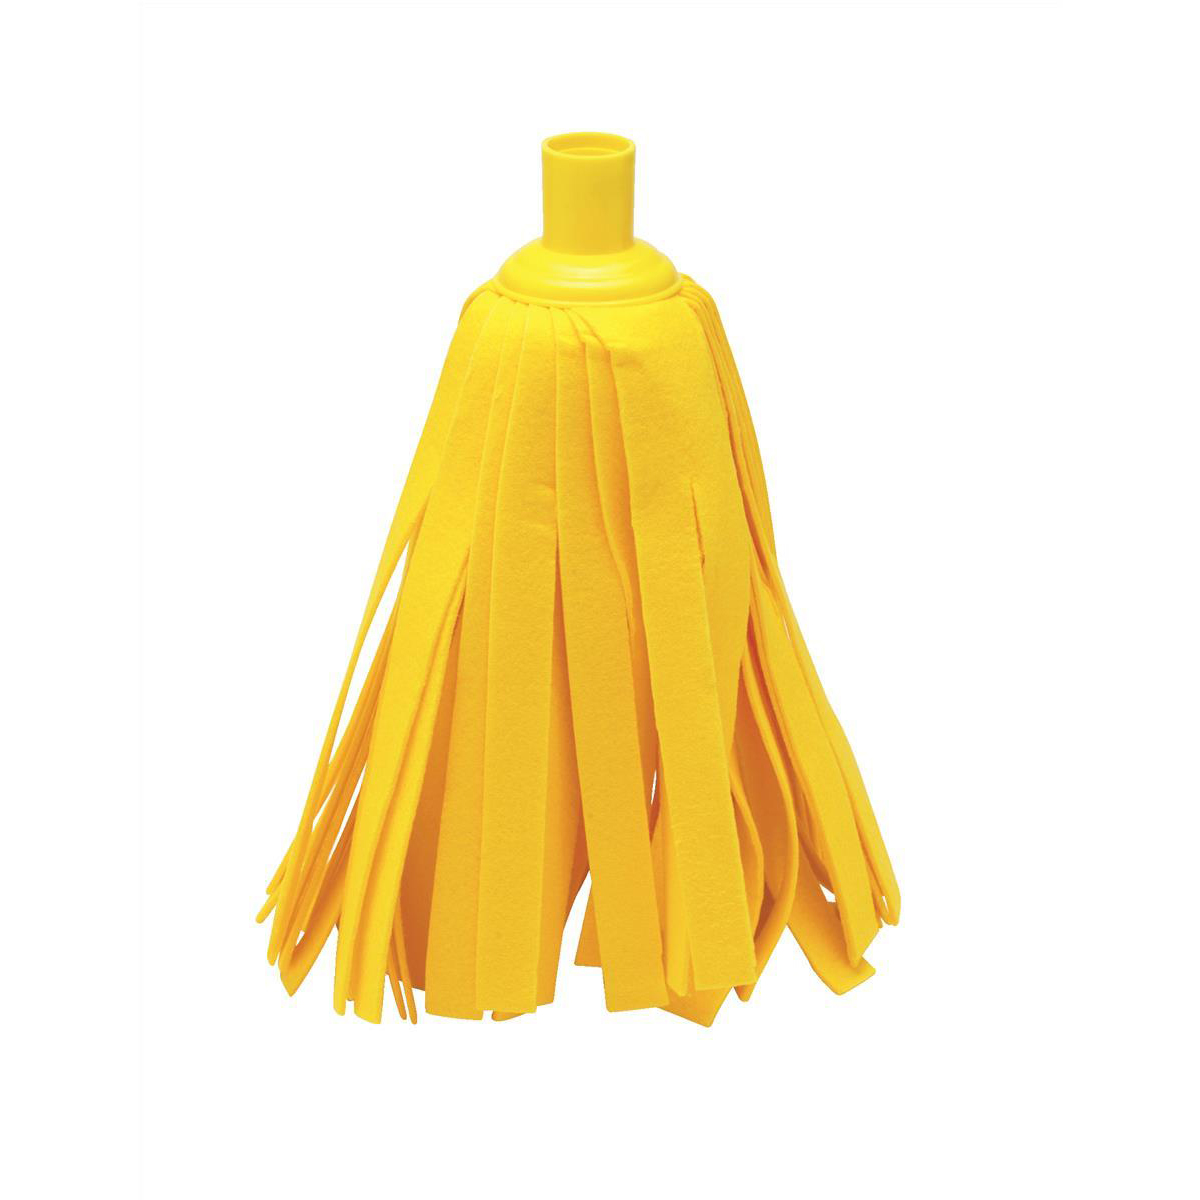 Mop heads Addis Cloth Mop Head Refill Thick Absorbent Strands and Yellow Socket Ref 510525